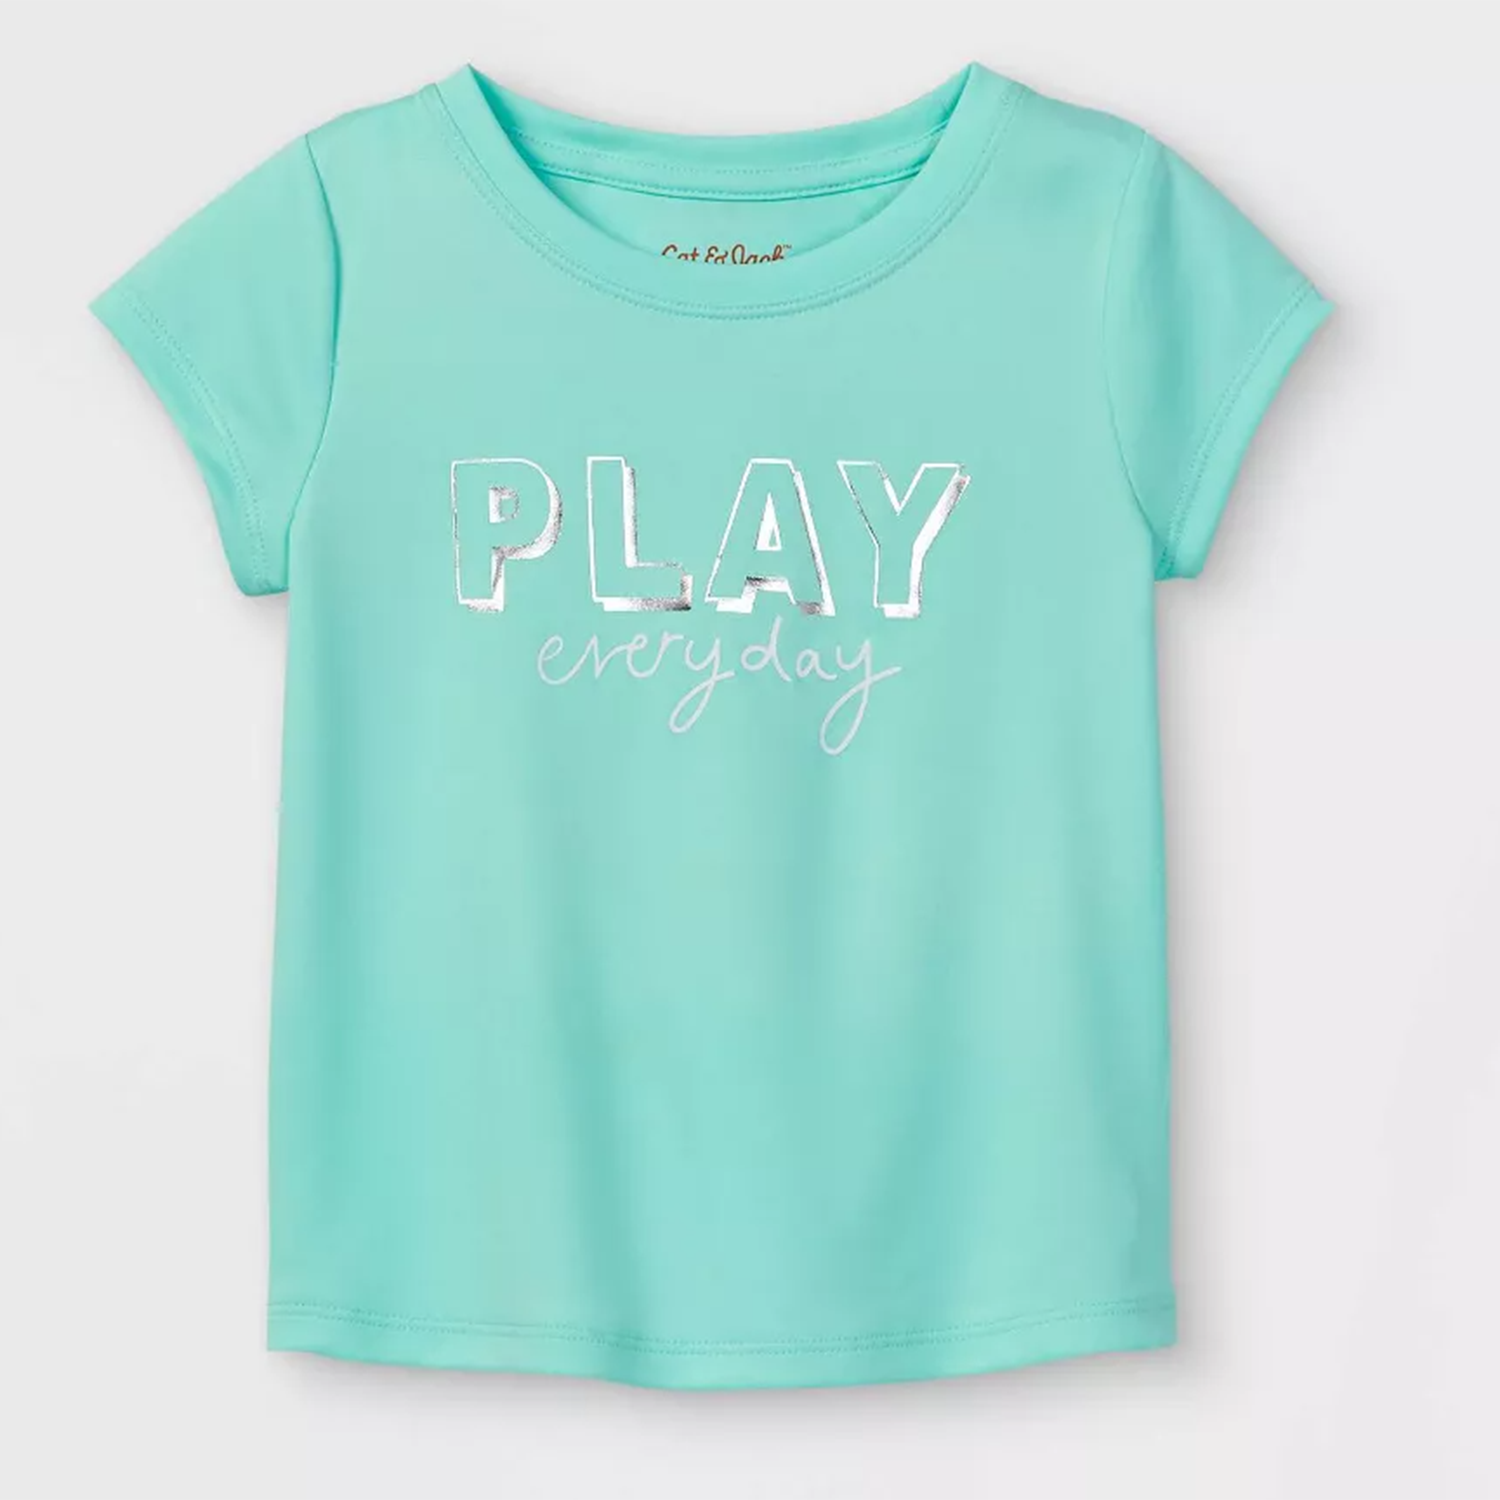 Cat & Jack Play Every Day Shirt